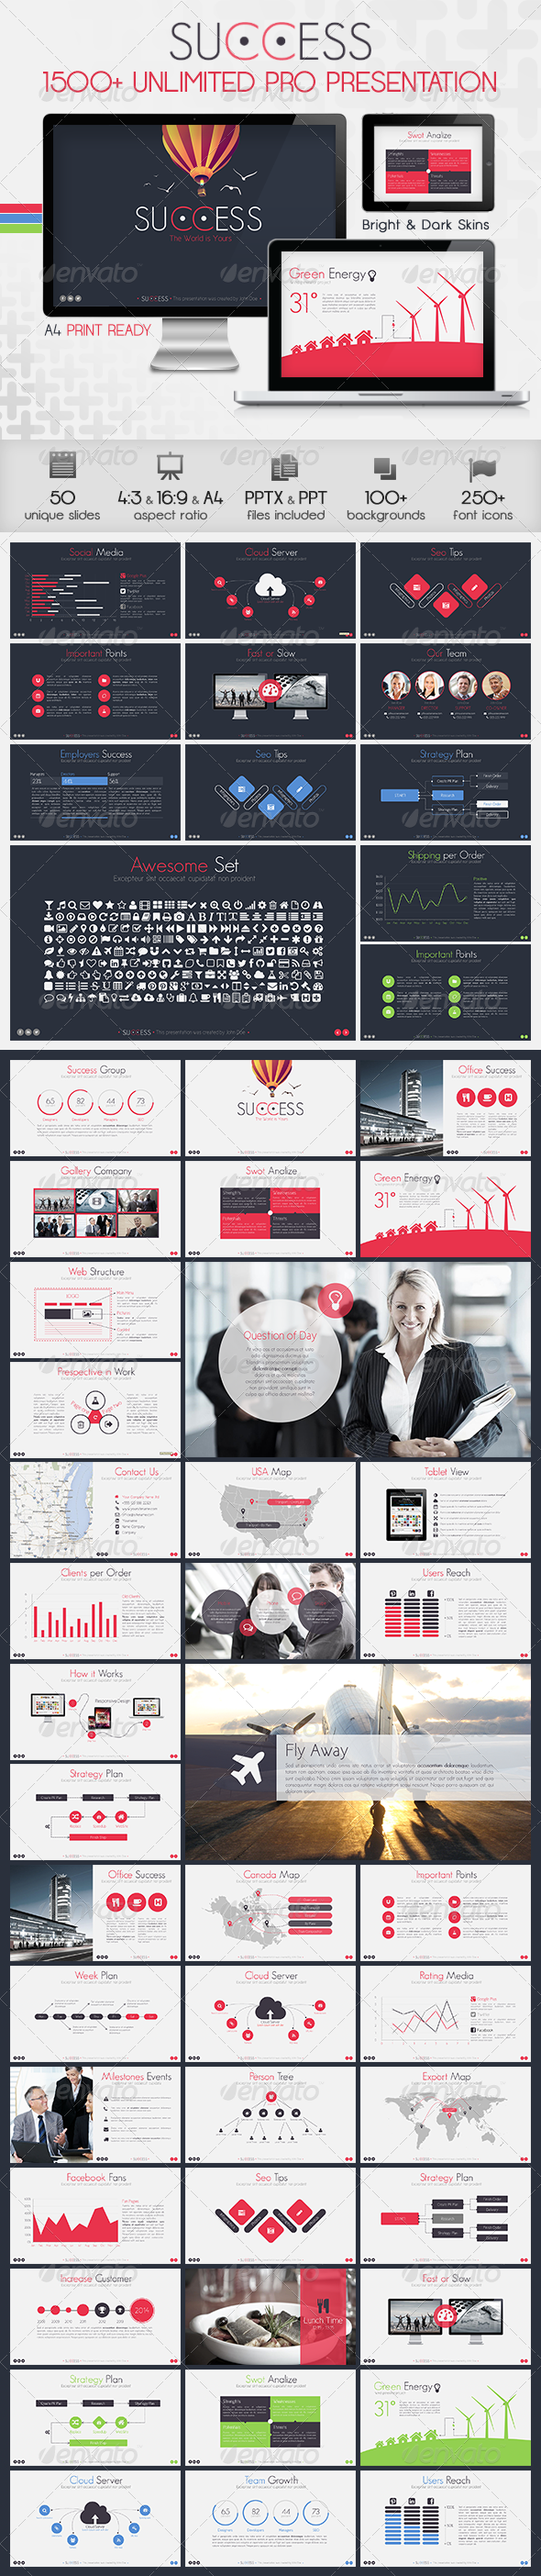 Success powerpoint presentation template by bandidos graphicriver success powerpoint presentation template business powerpoint templates maxwellsz